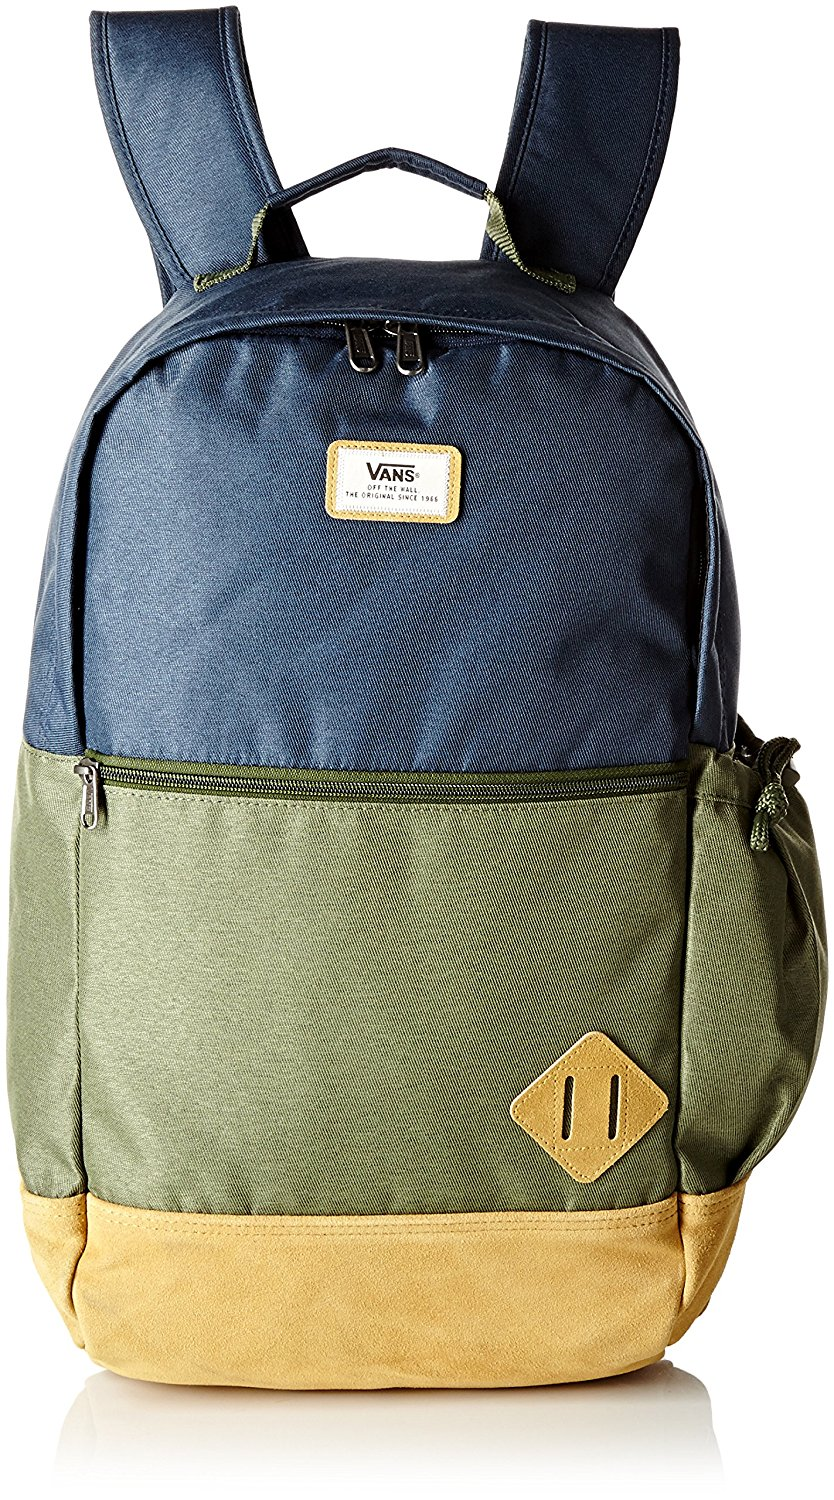 1d2621a95a Get Quotations · VANS - Vans Backpack - Van Doren II